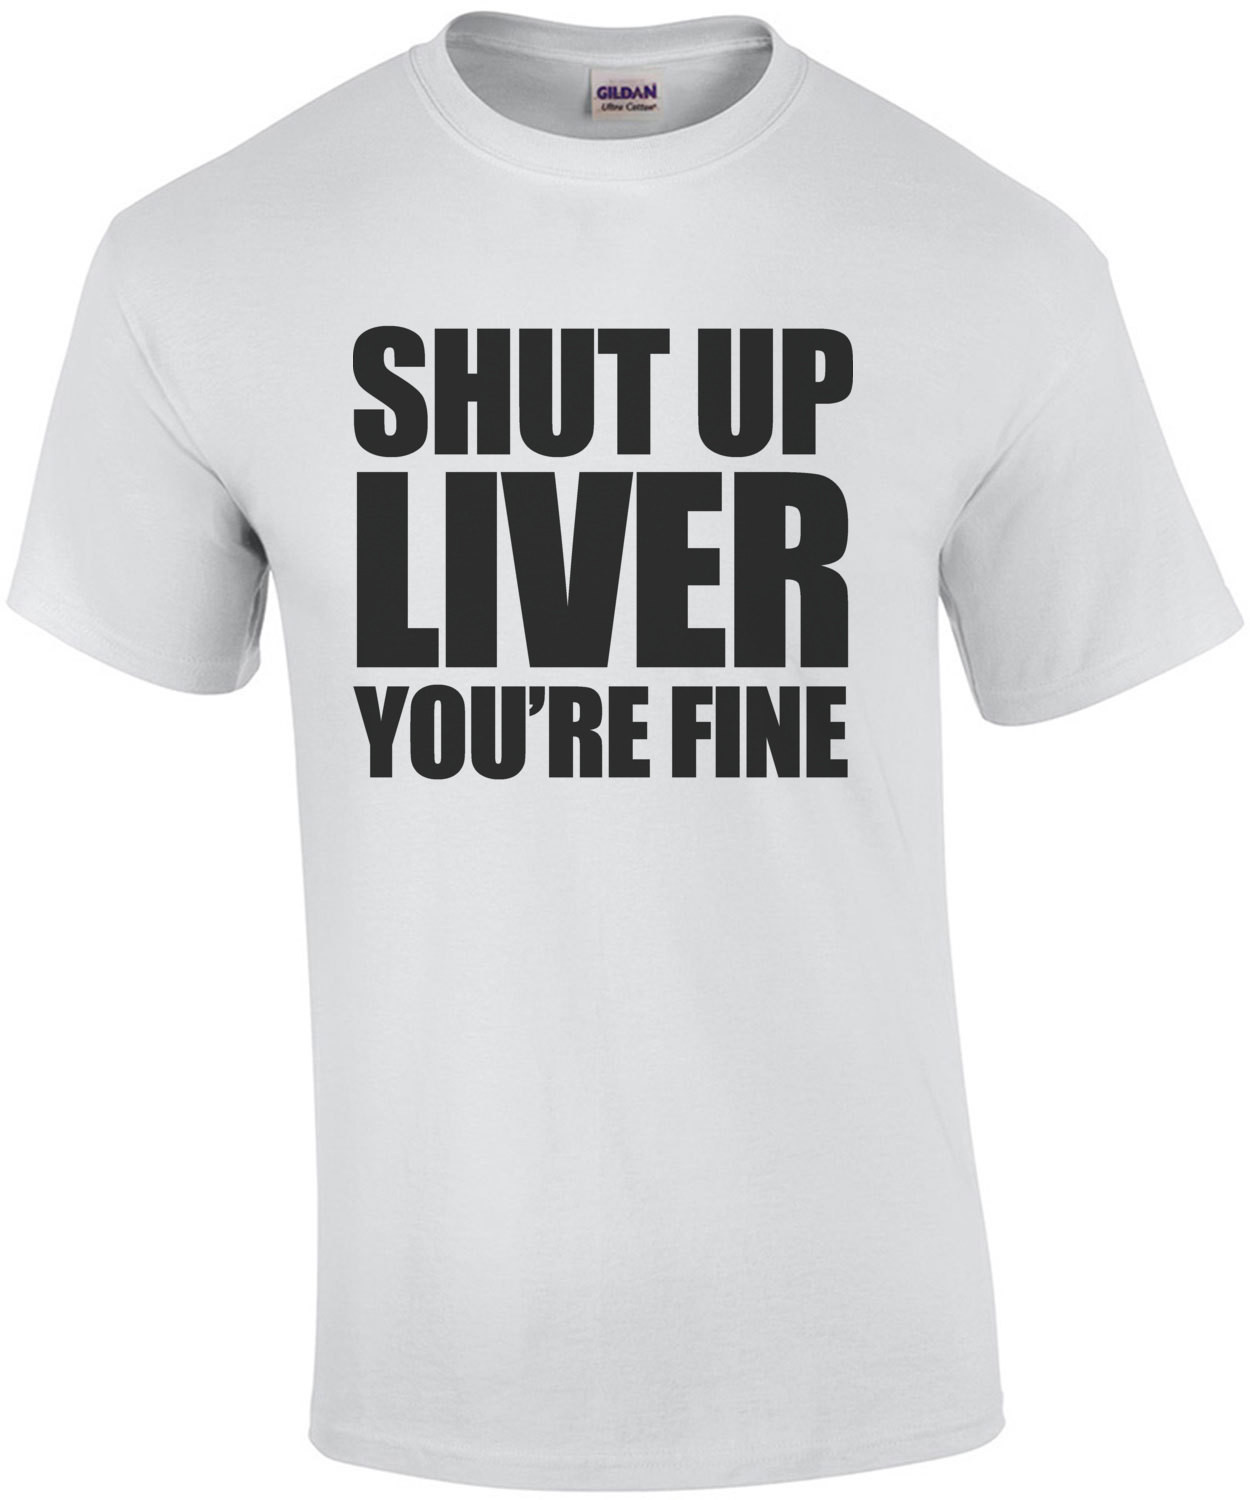 Shut up liver you're fine. Drinking T-shirt